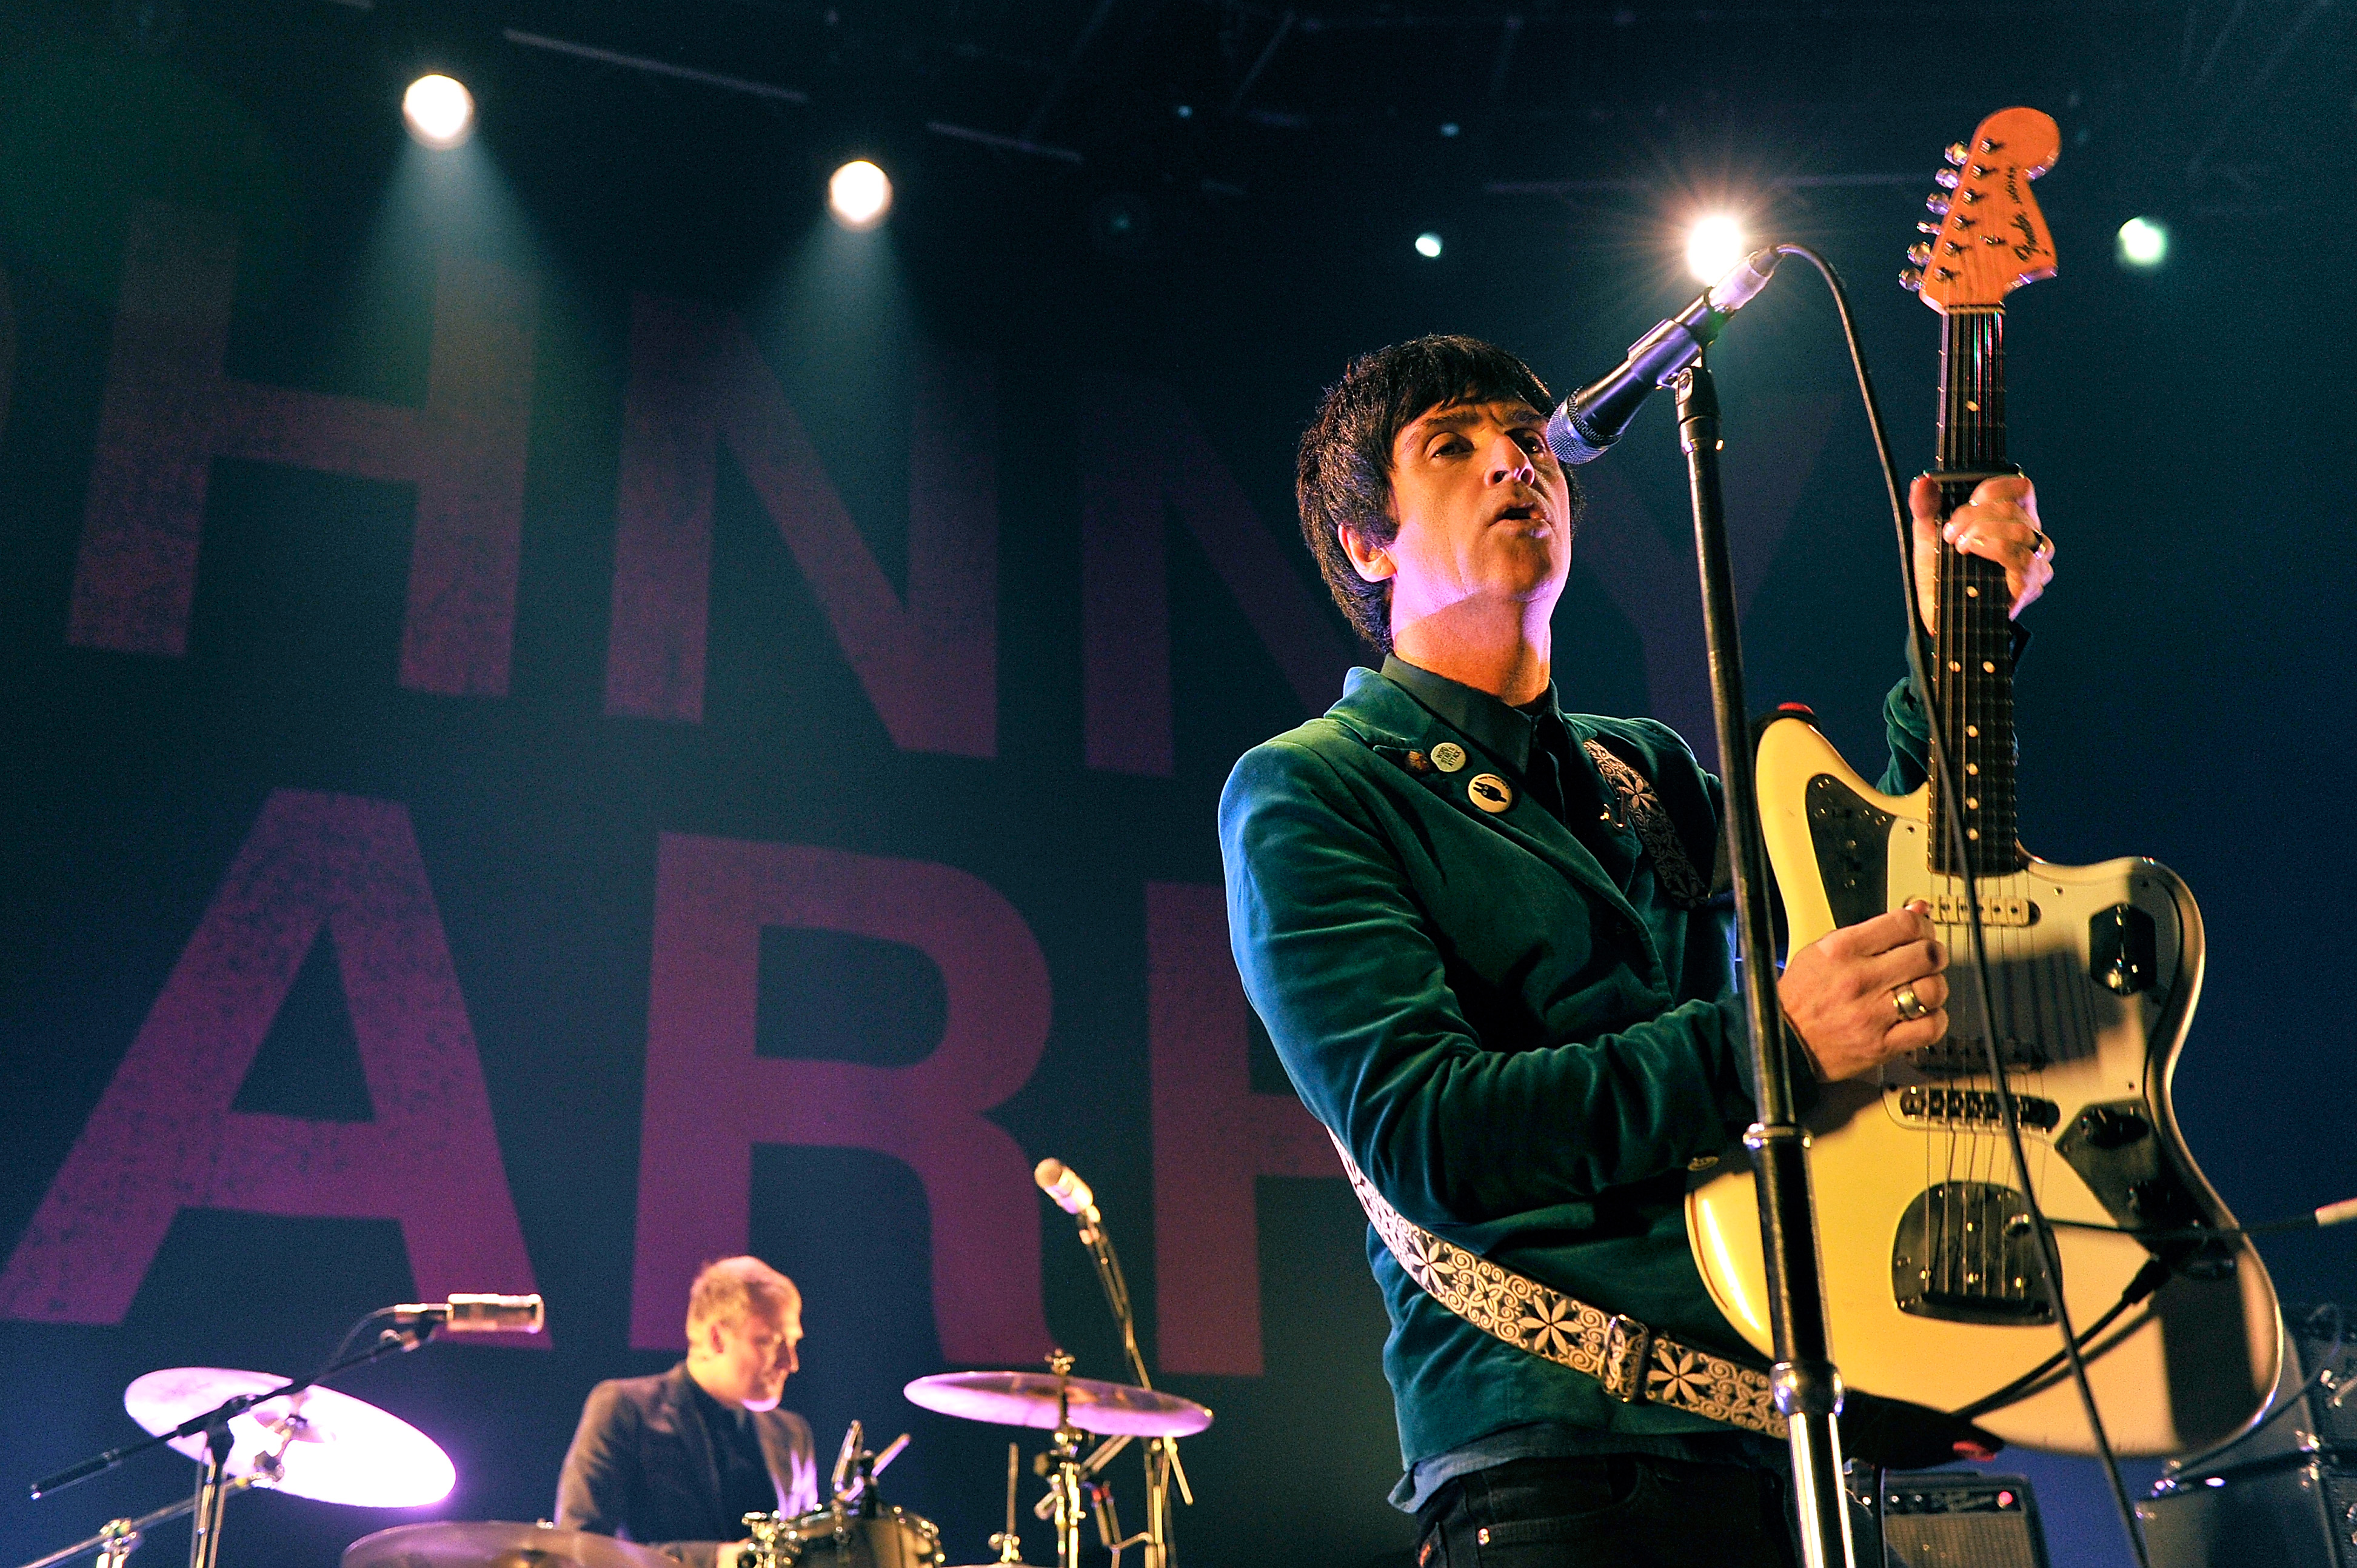 LONDON, ENGLAND - OCTOBER 18:  Johnny Marr performs at The Roundhouse on October 18, 2013 in London, England.  (Photo by Matt